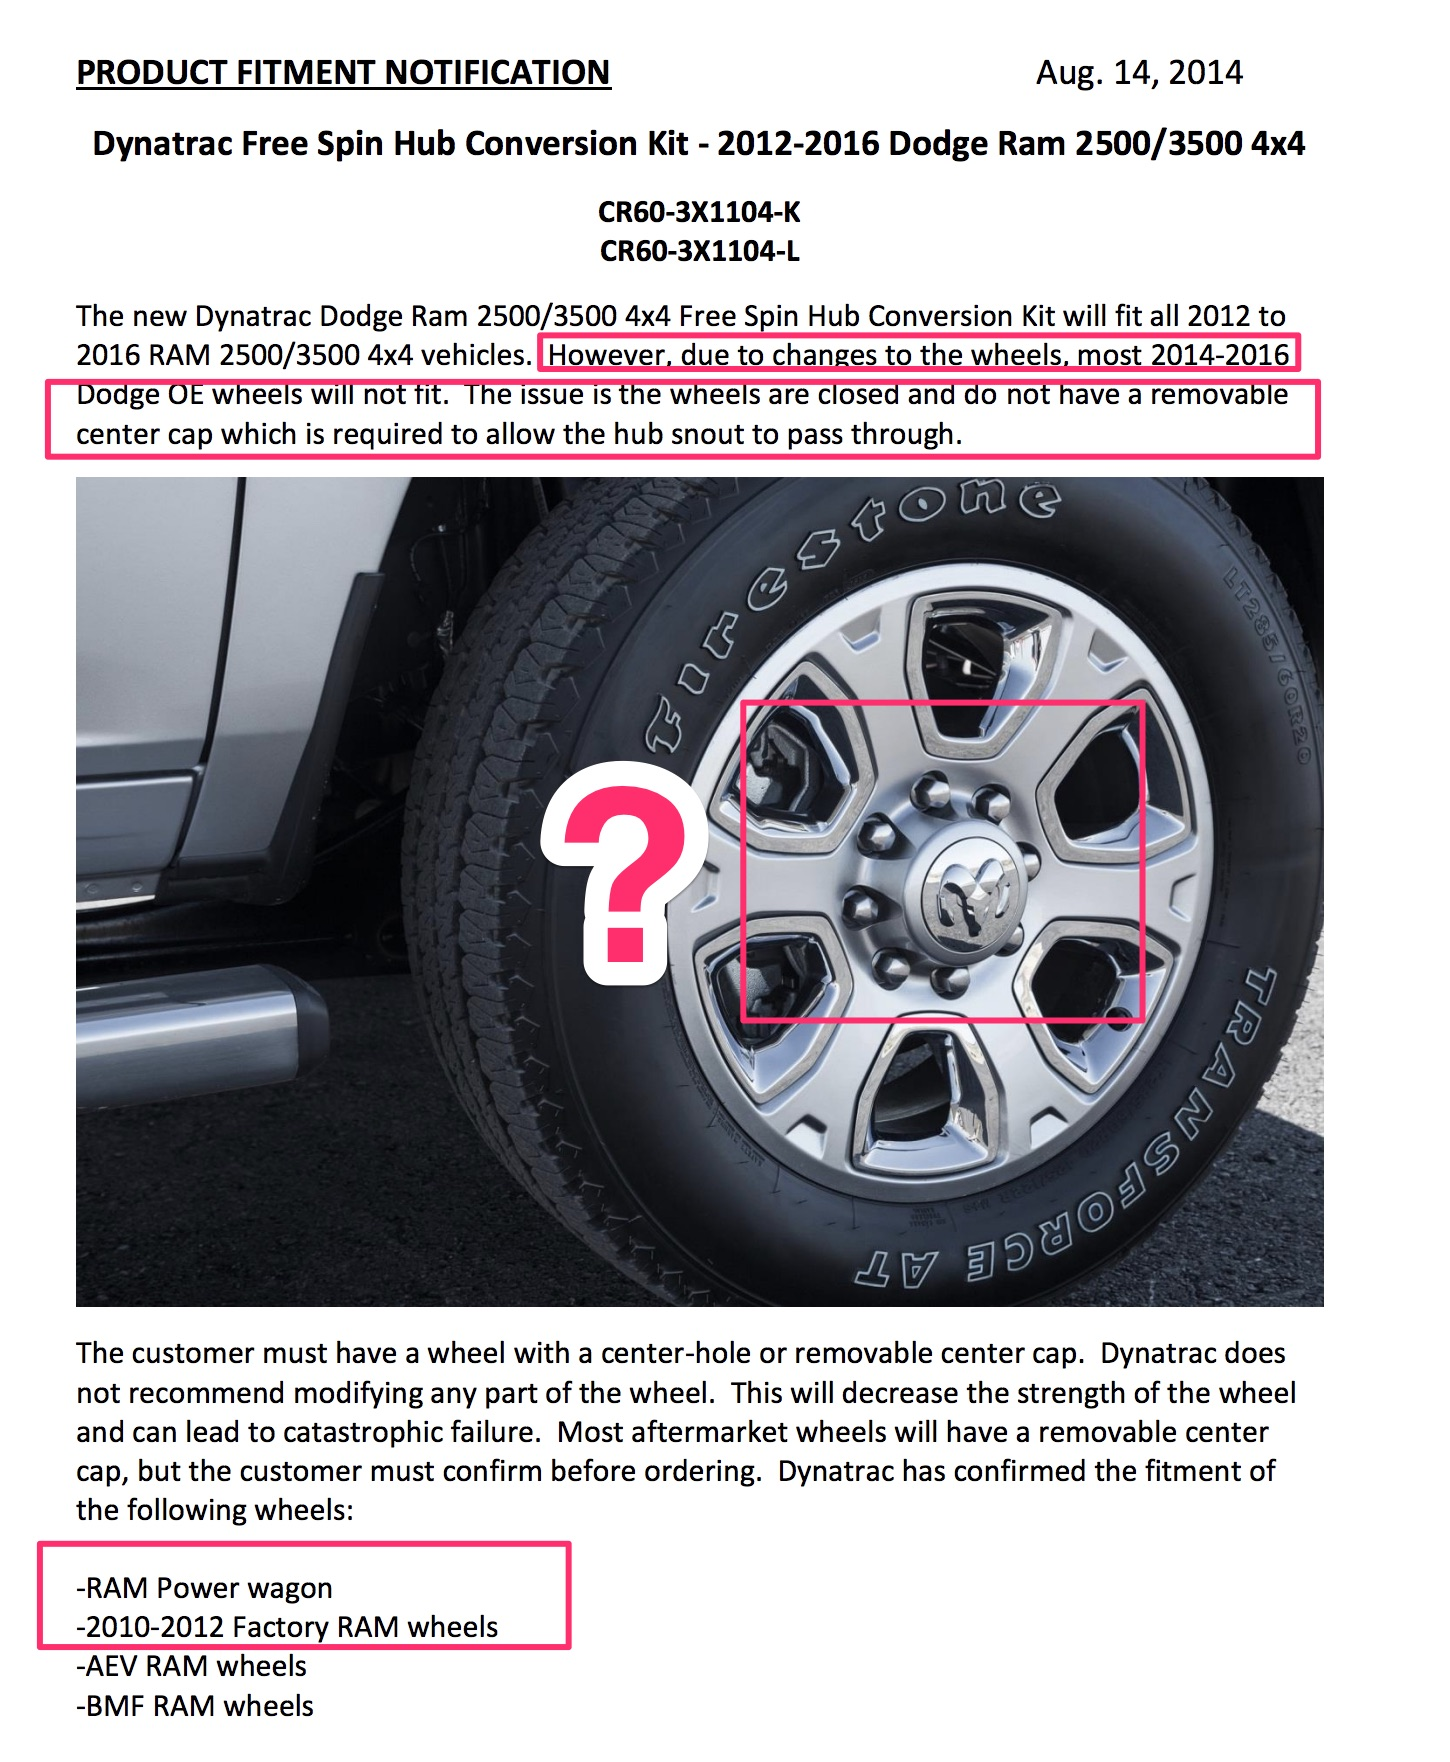 2014-2016-Dodge-Free-Spin-Kit-Fitment-Notification-V1_pdf.jpg